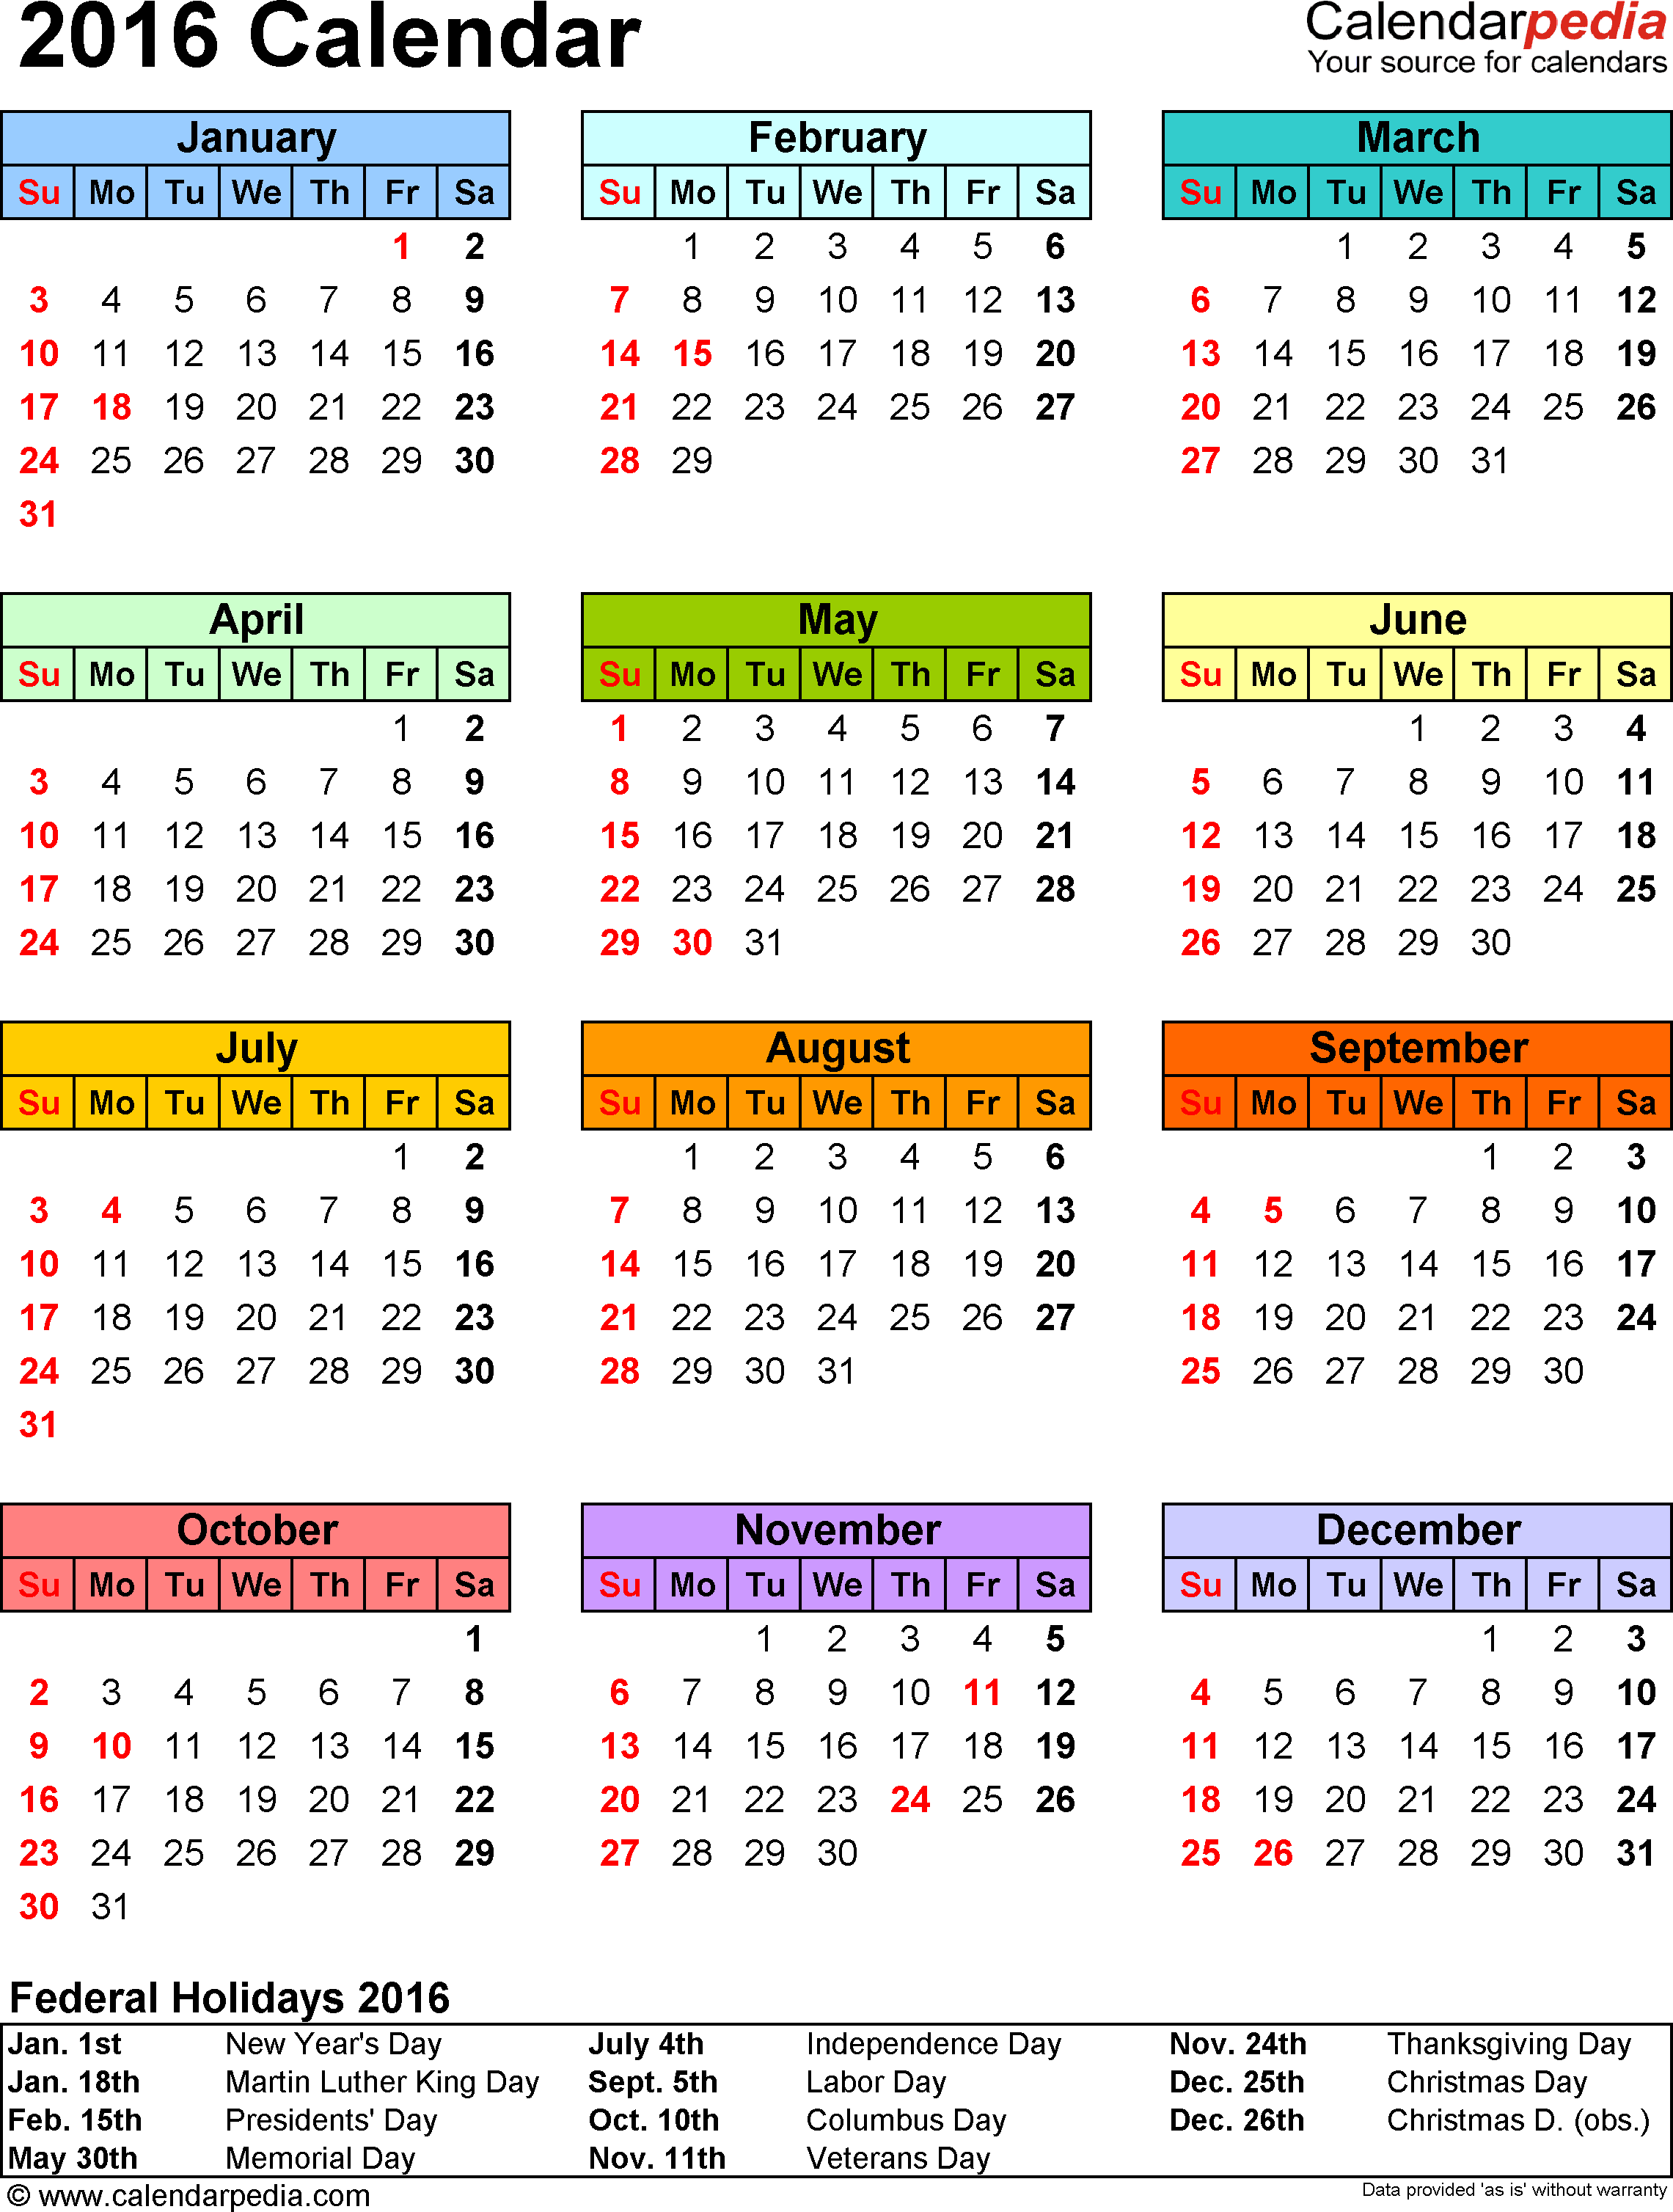 2016 Calendar with Federal Holidays & Excel/PDF/Word templates